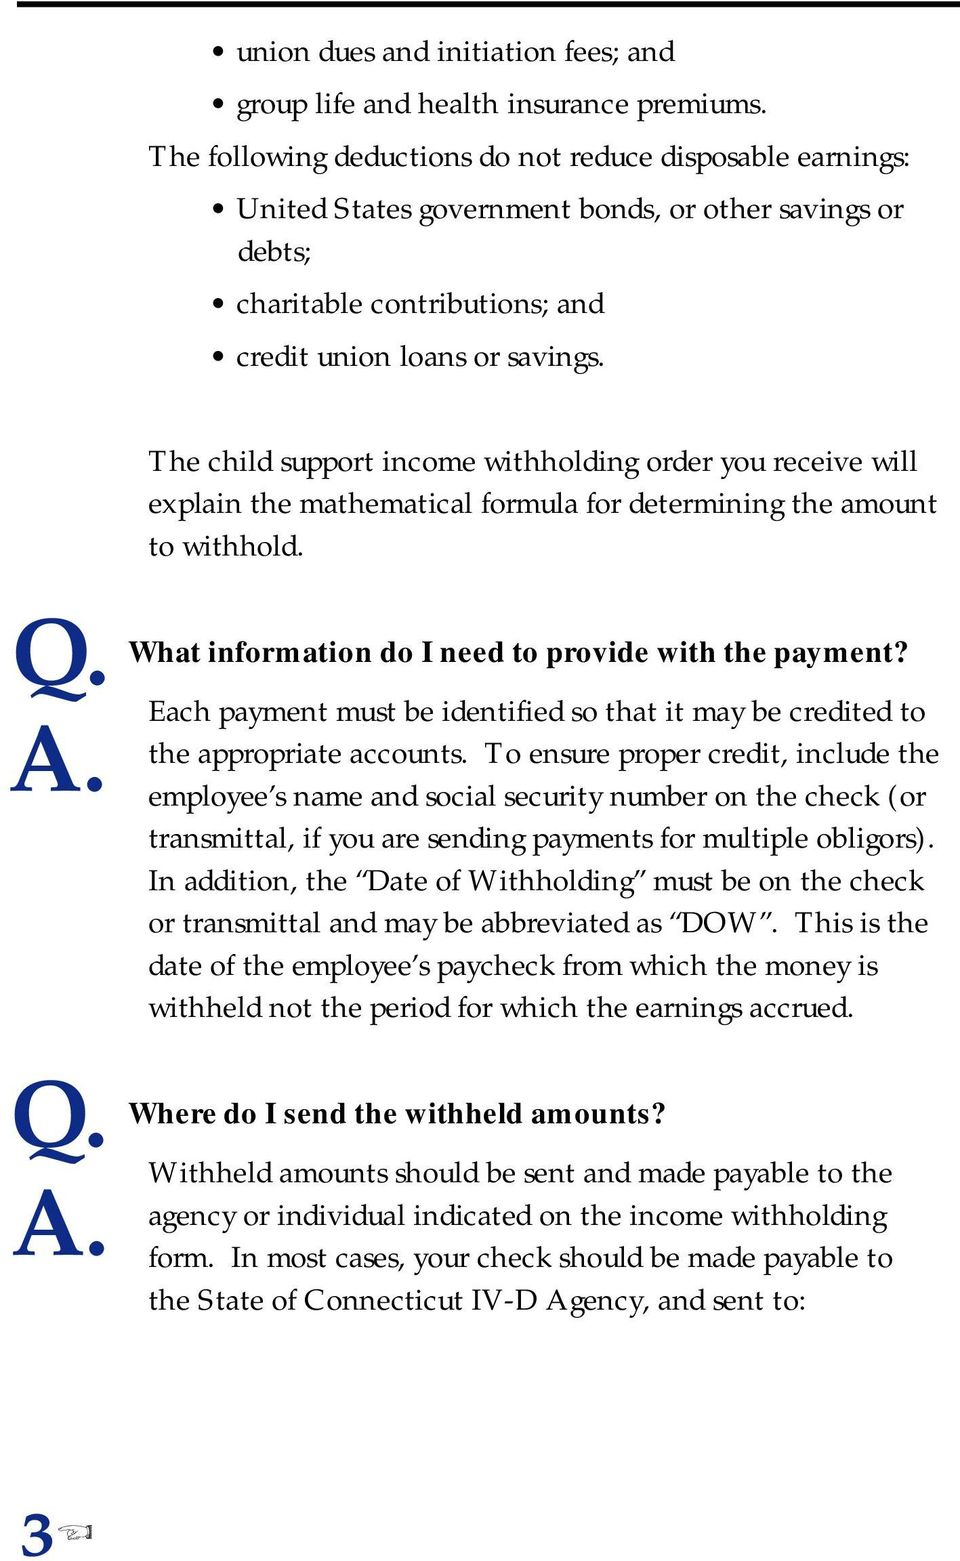 The child support income withholding order you receive will explain the mathematical formula for determining the amount to withhold. What information do I need to provide with the payment?